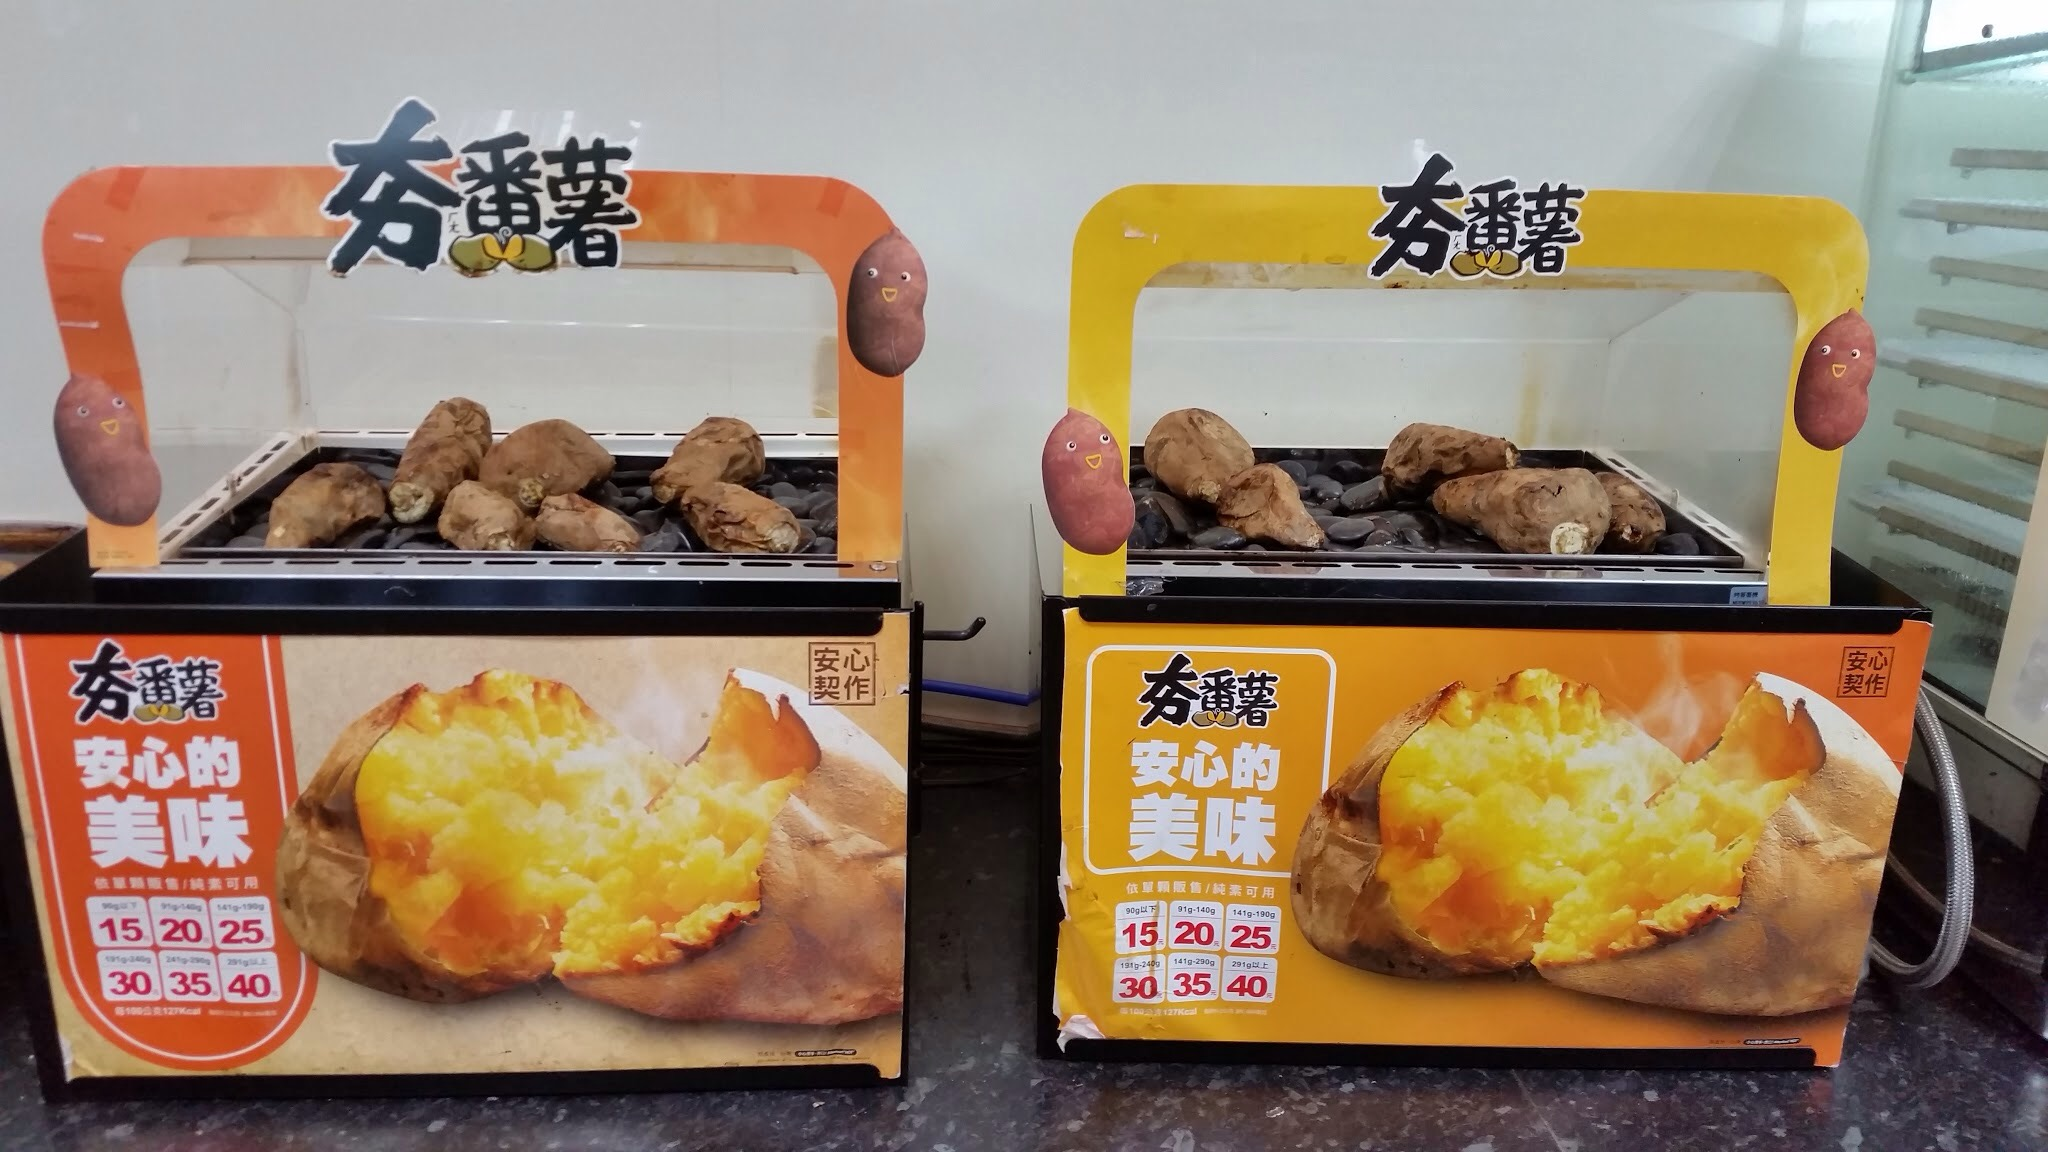 Food Taiwan Convenience Stores